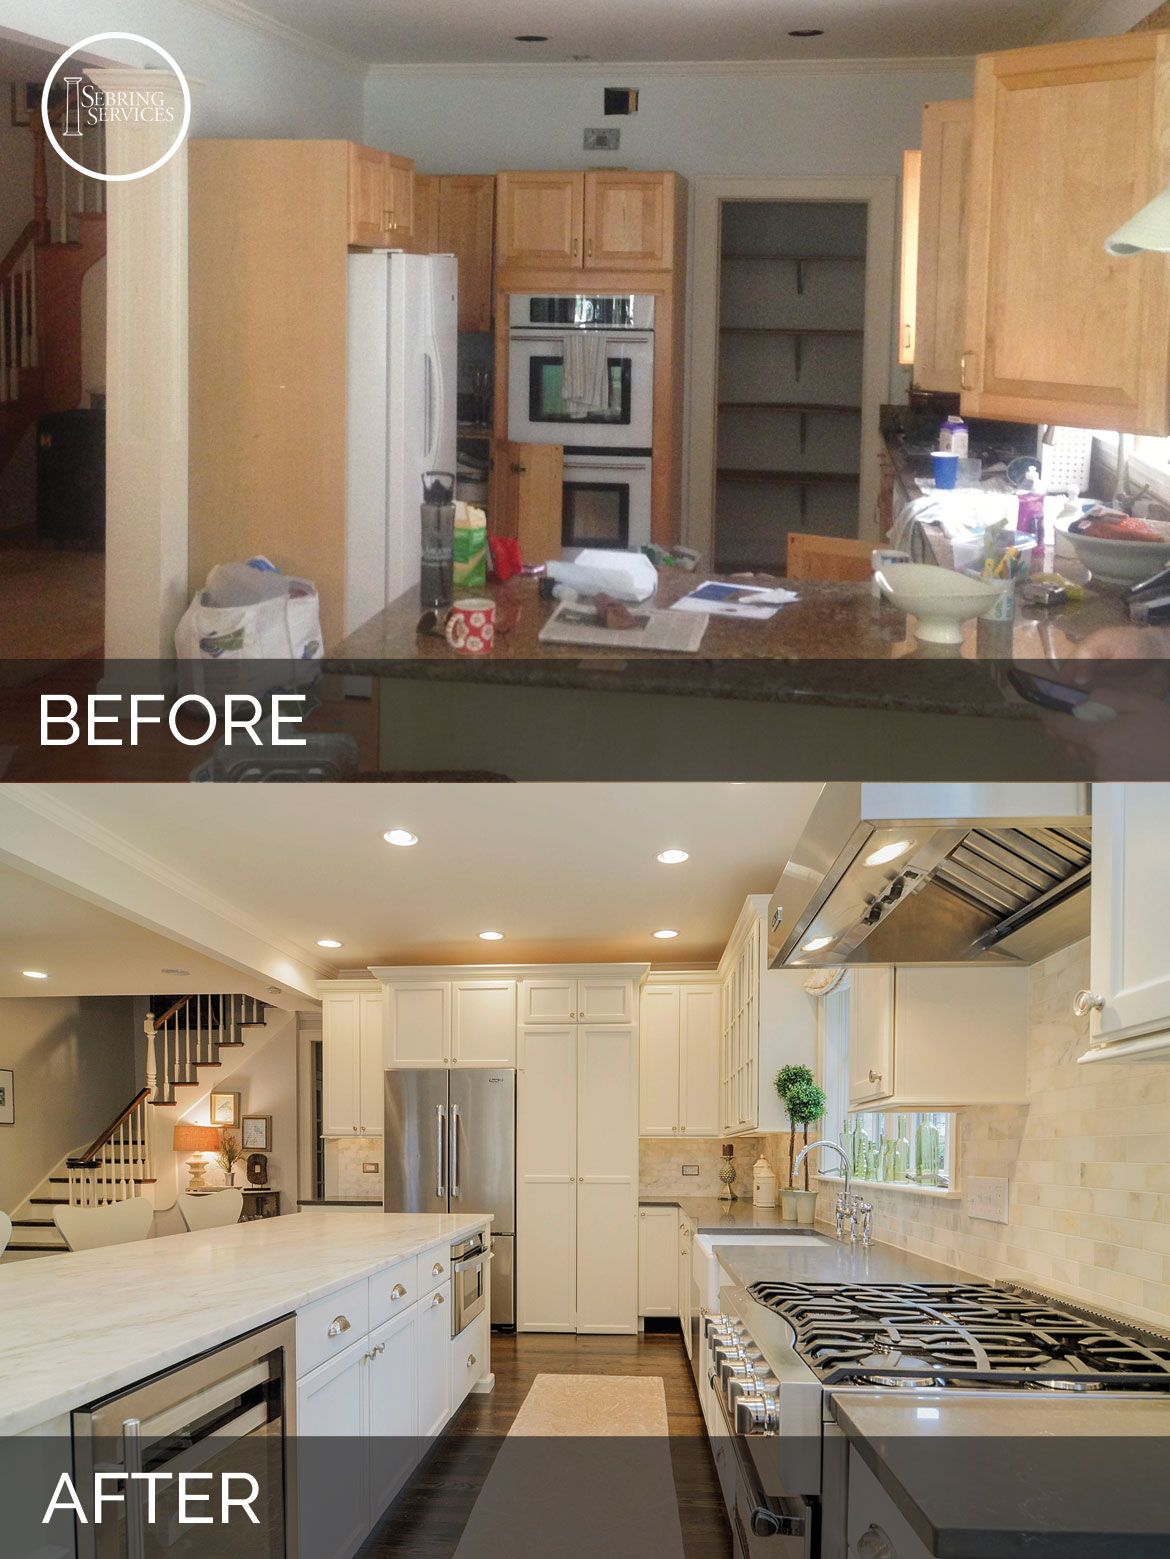 Ben ellen 39 s kitchen before after pictures kitchens for Kitchen renovation ideas images